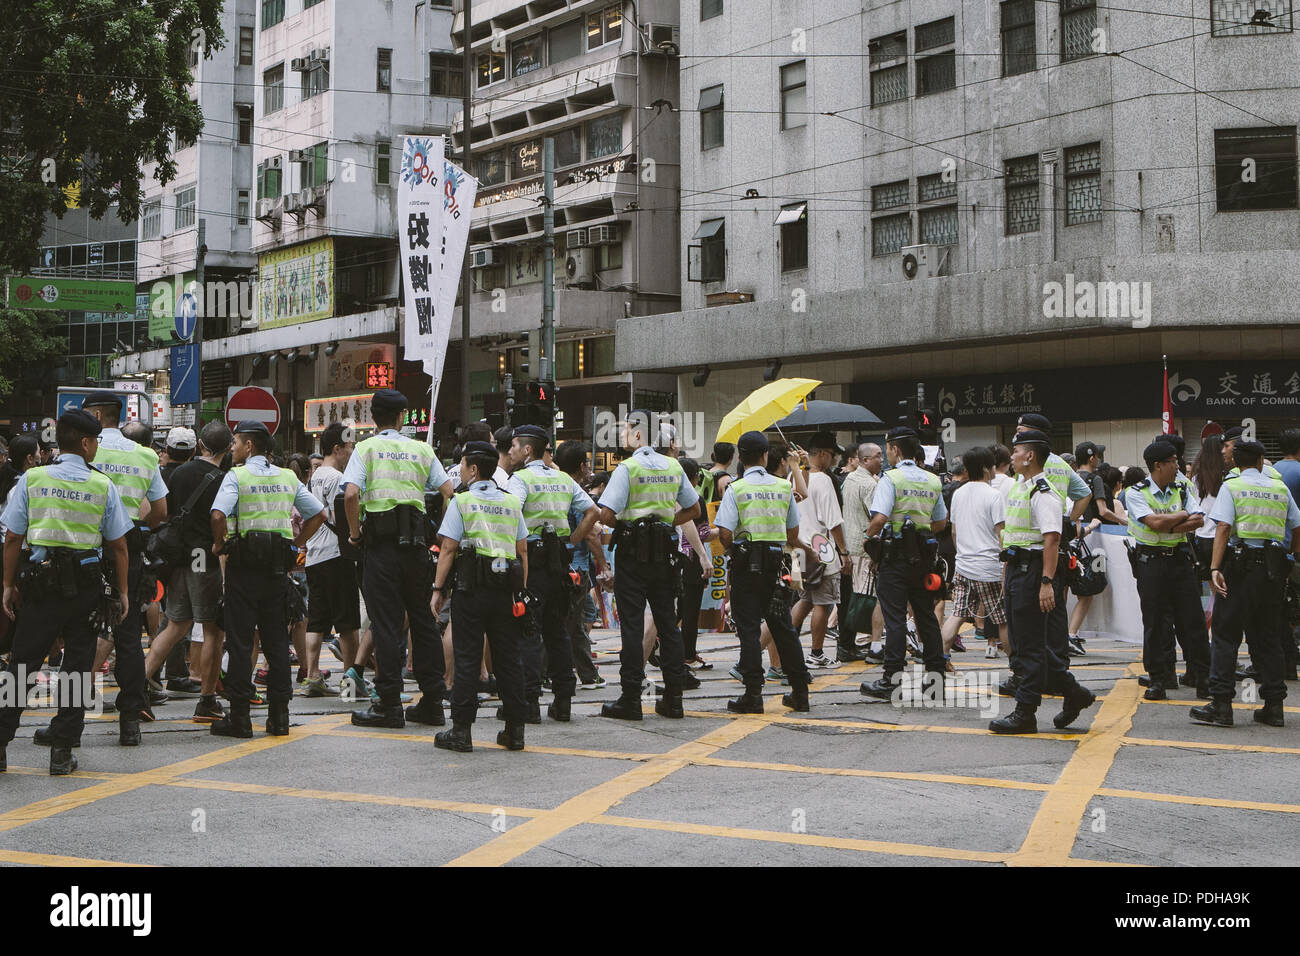 Hong Kong, Hong Kong. 1st July, 2017. Police seen monitoring the thousands of demonstrators marching.Thousands came together and demonstrated to mark the 20th anniversary of the Handover from Britain to China, Hong Kong's return to China on July 1st 1997. The protestors marched through sun and rain from Victoria Park to Admiralty, taking a stand on a variety of human-rights-related causes. Credit: Viola Gaskell/SOPA Images/ZUMA Wire/Alamy Live News - Stock Image